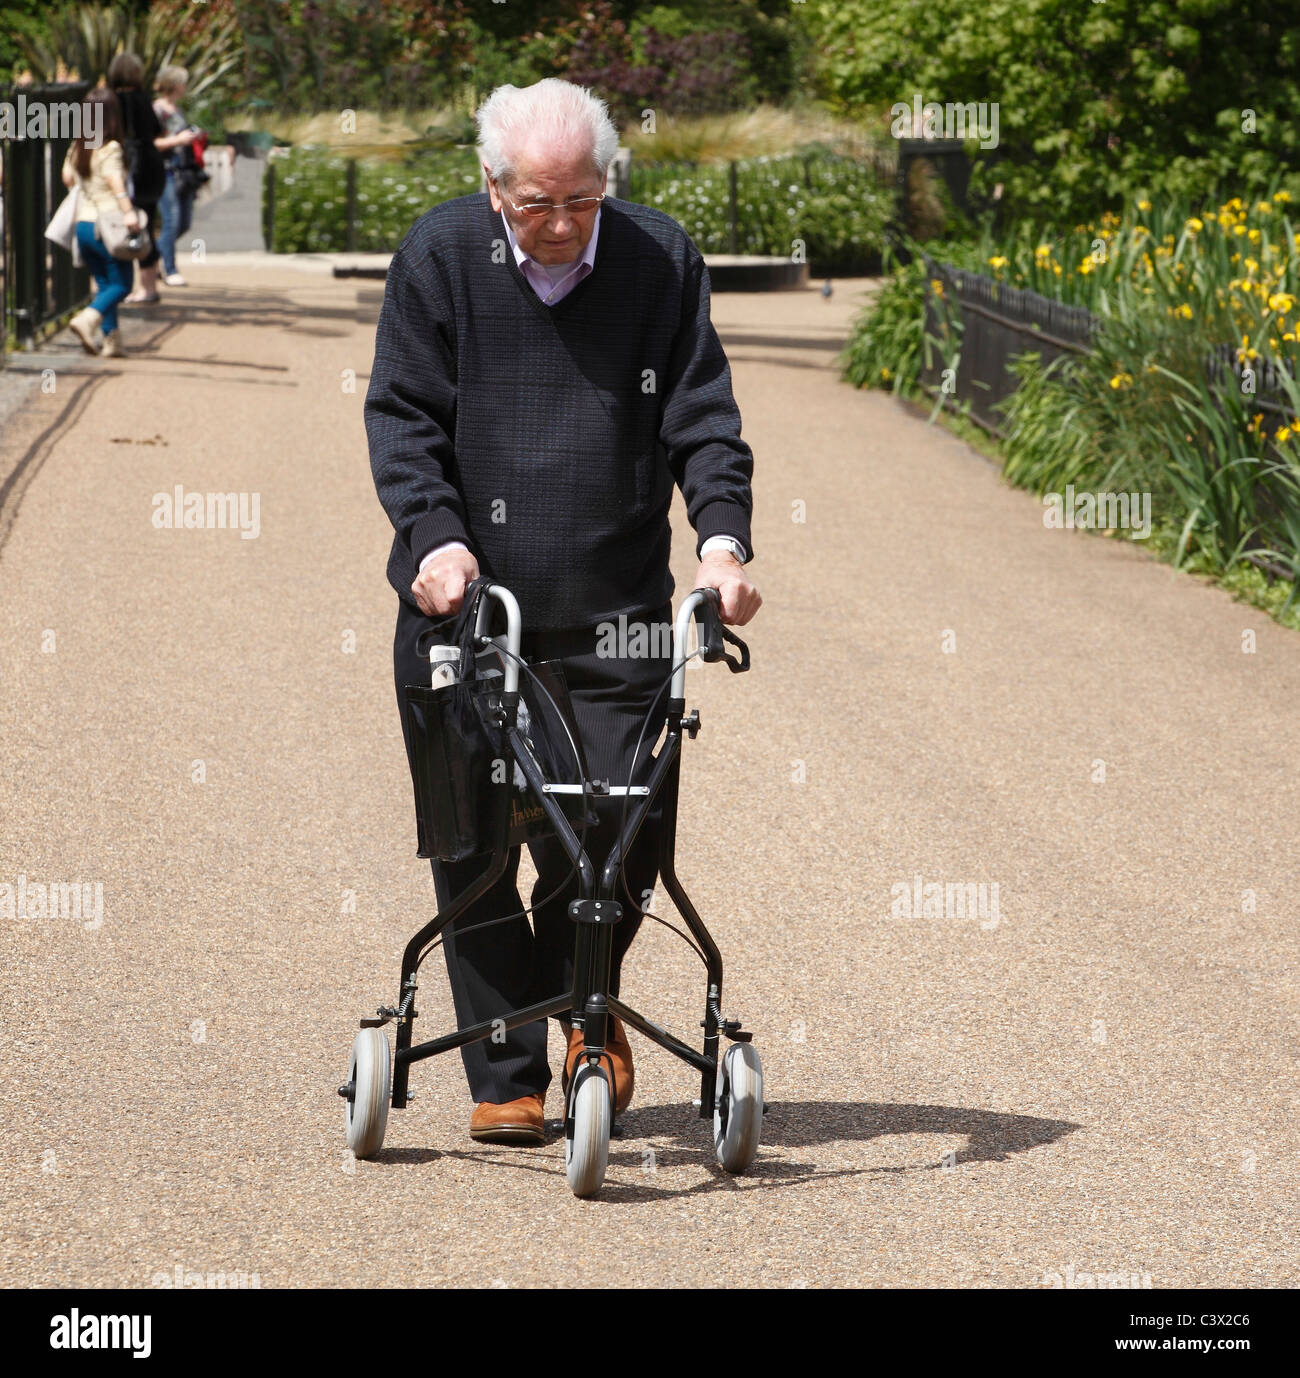 Elderly Senior citizen walking with a frame in the park. - Stock Image